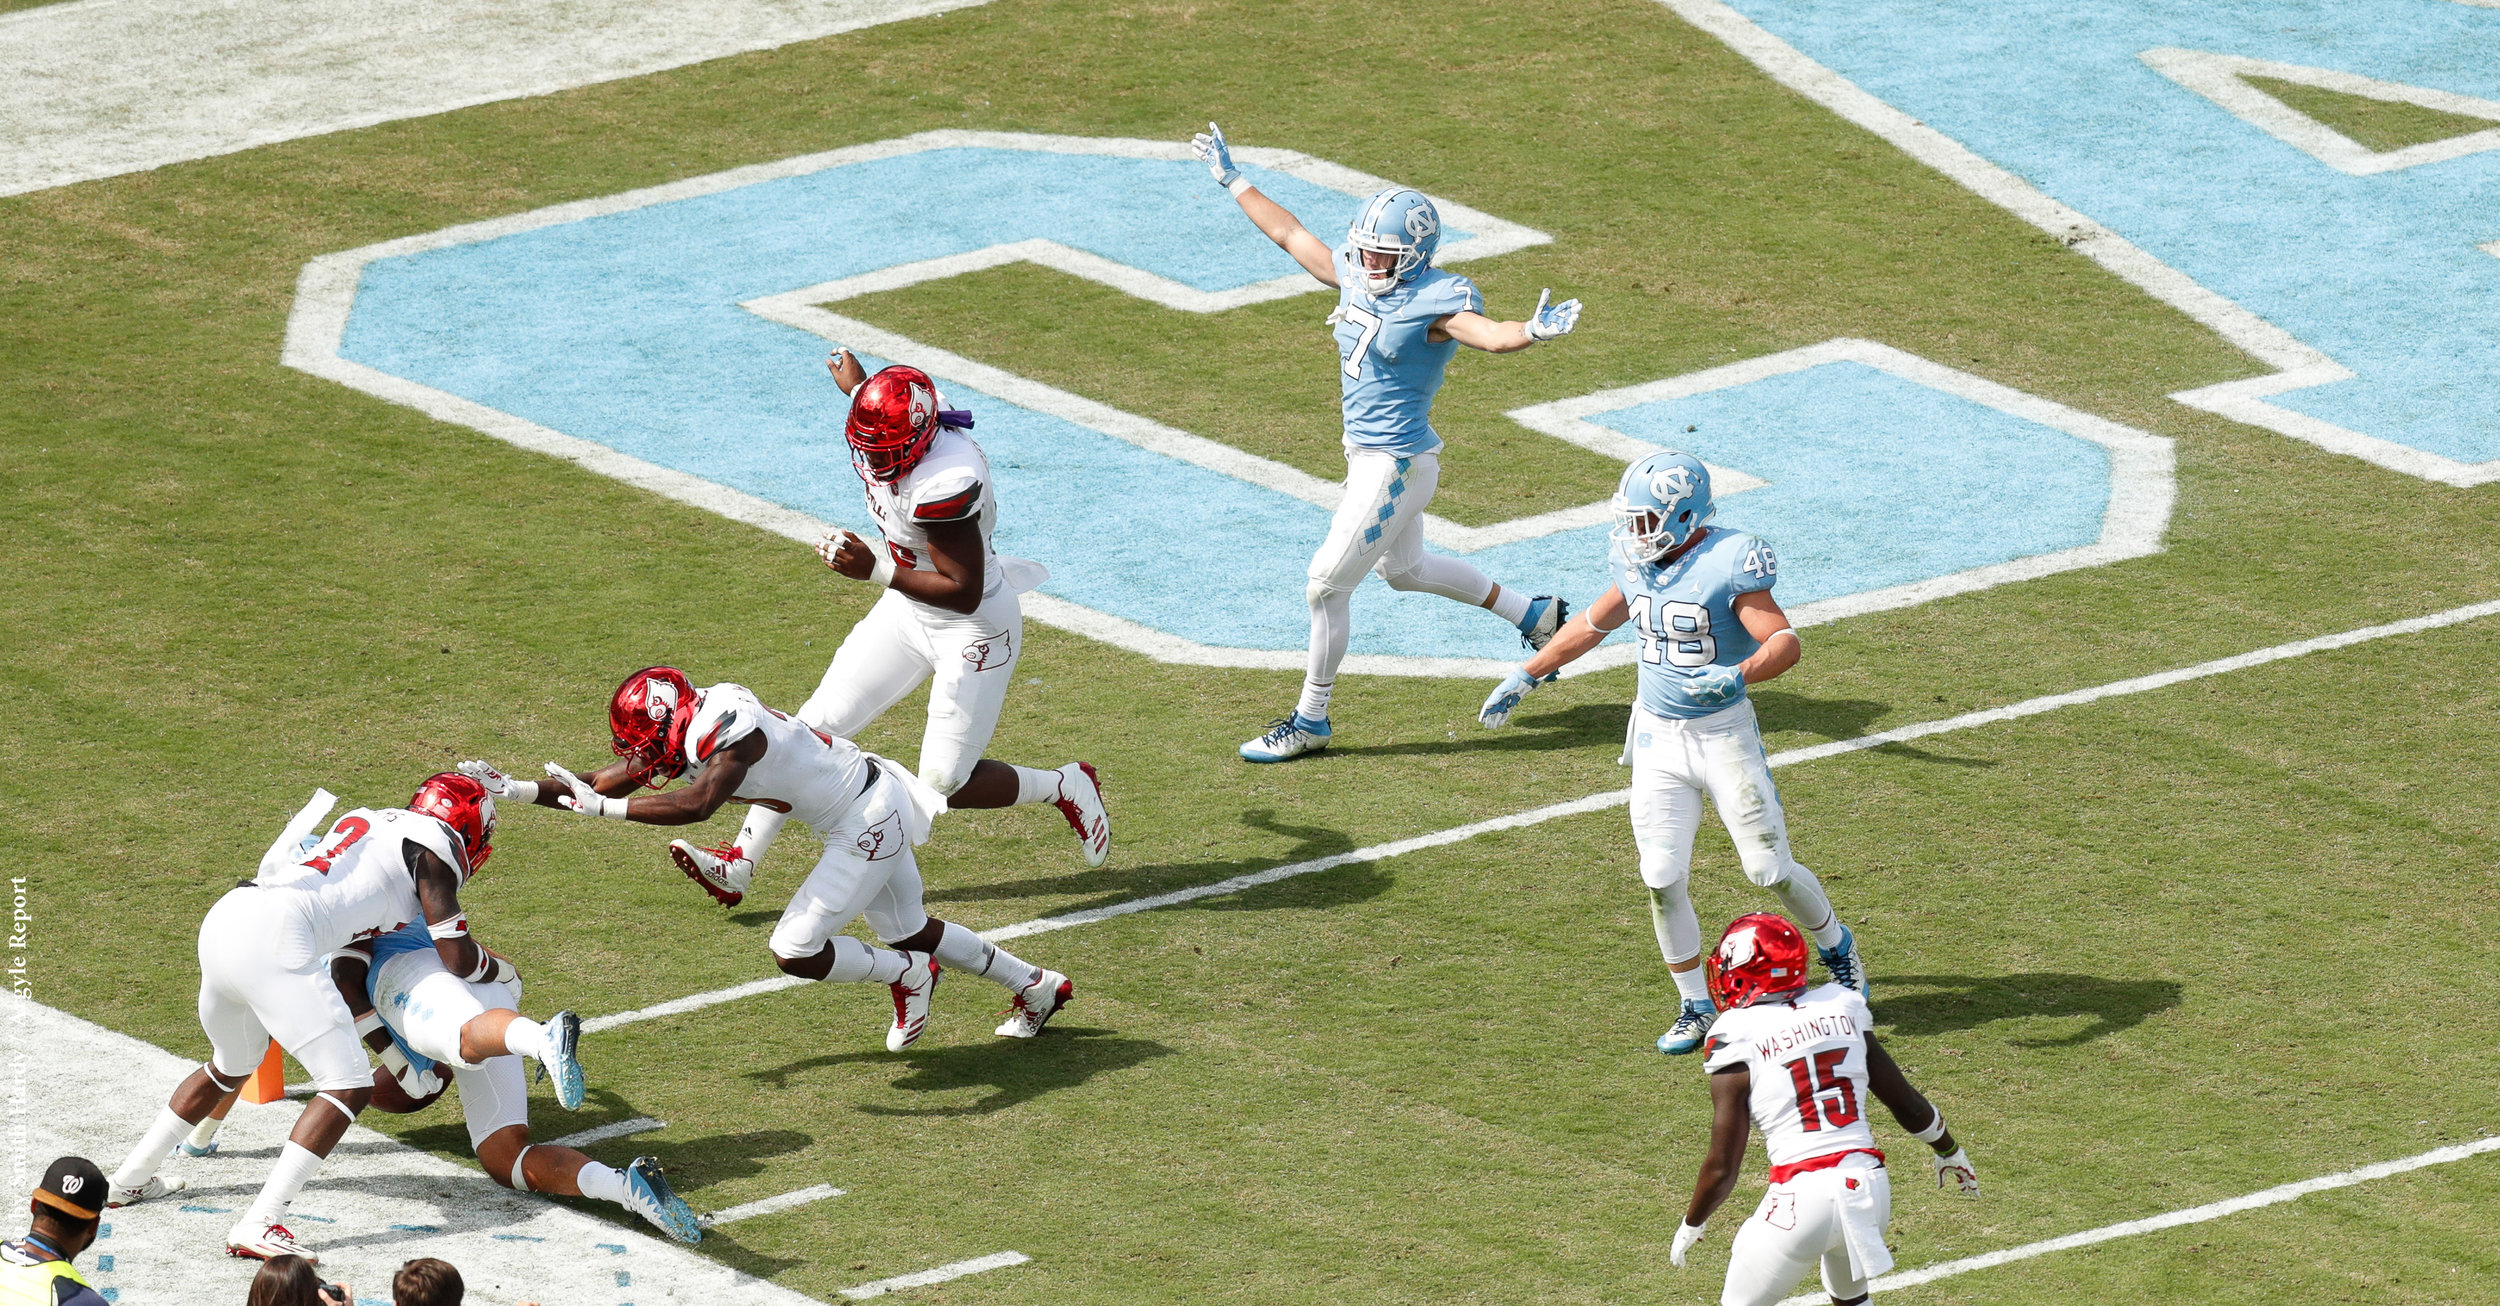 Tarheels vs Cards Football 2017 (16 of 25).jpg